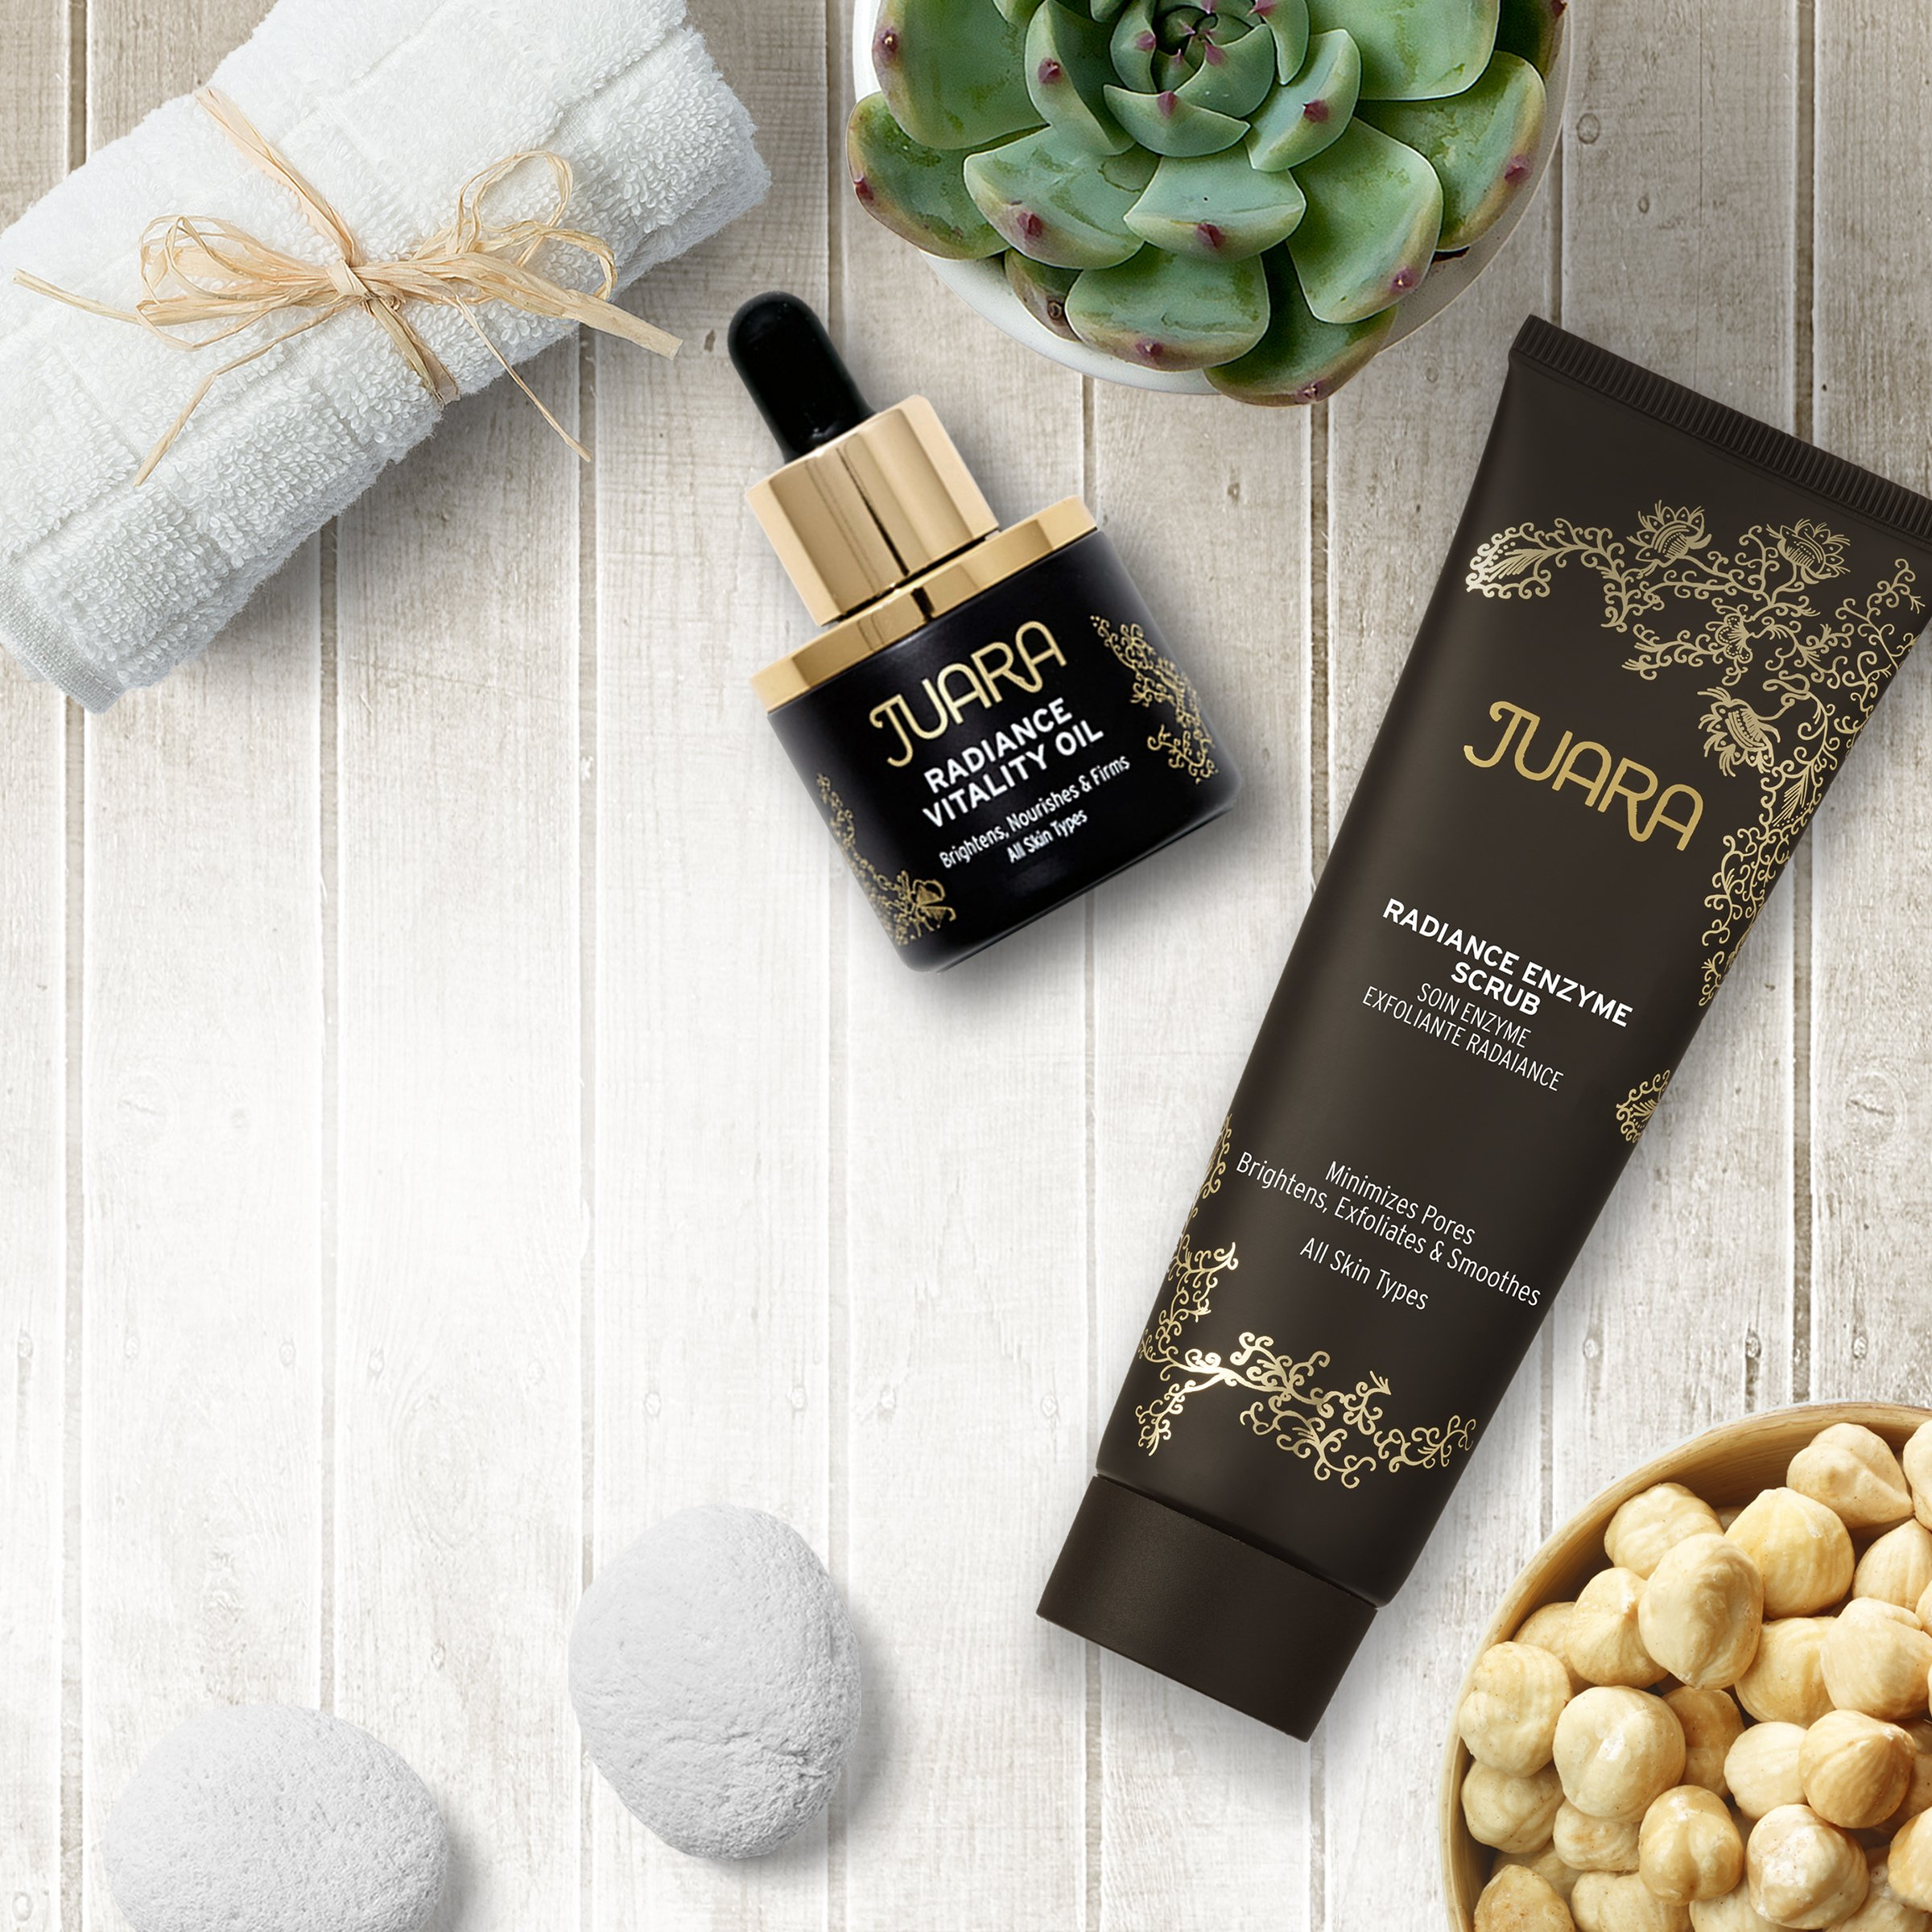 JUARA Radiance Enzyme Scrub - Facial Enzyme Scrub - Physical Exfoliant Enzyme Facial Scrub for All Skin Types - Enzyme Exfoliant for Face - Dermatologist Tested (1 Pack)